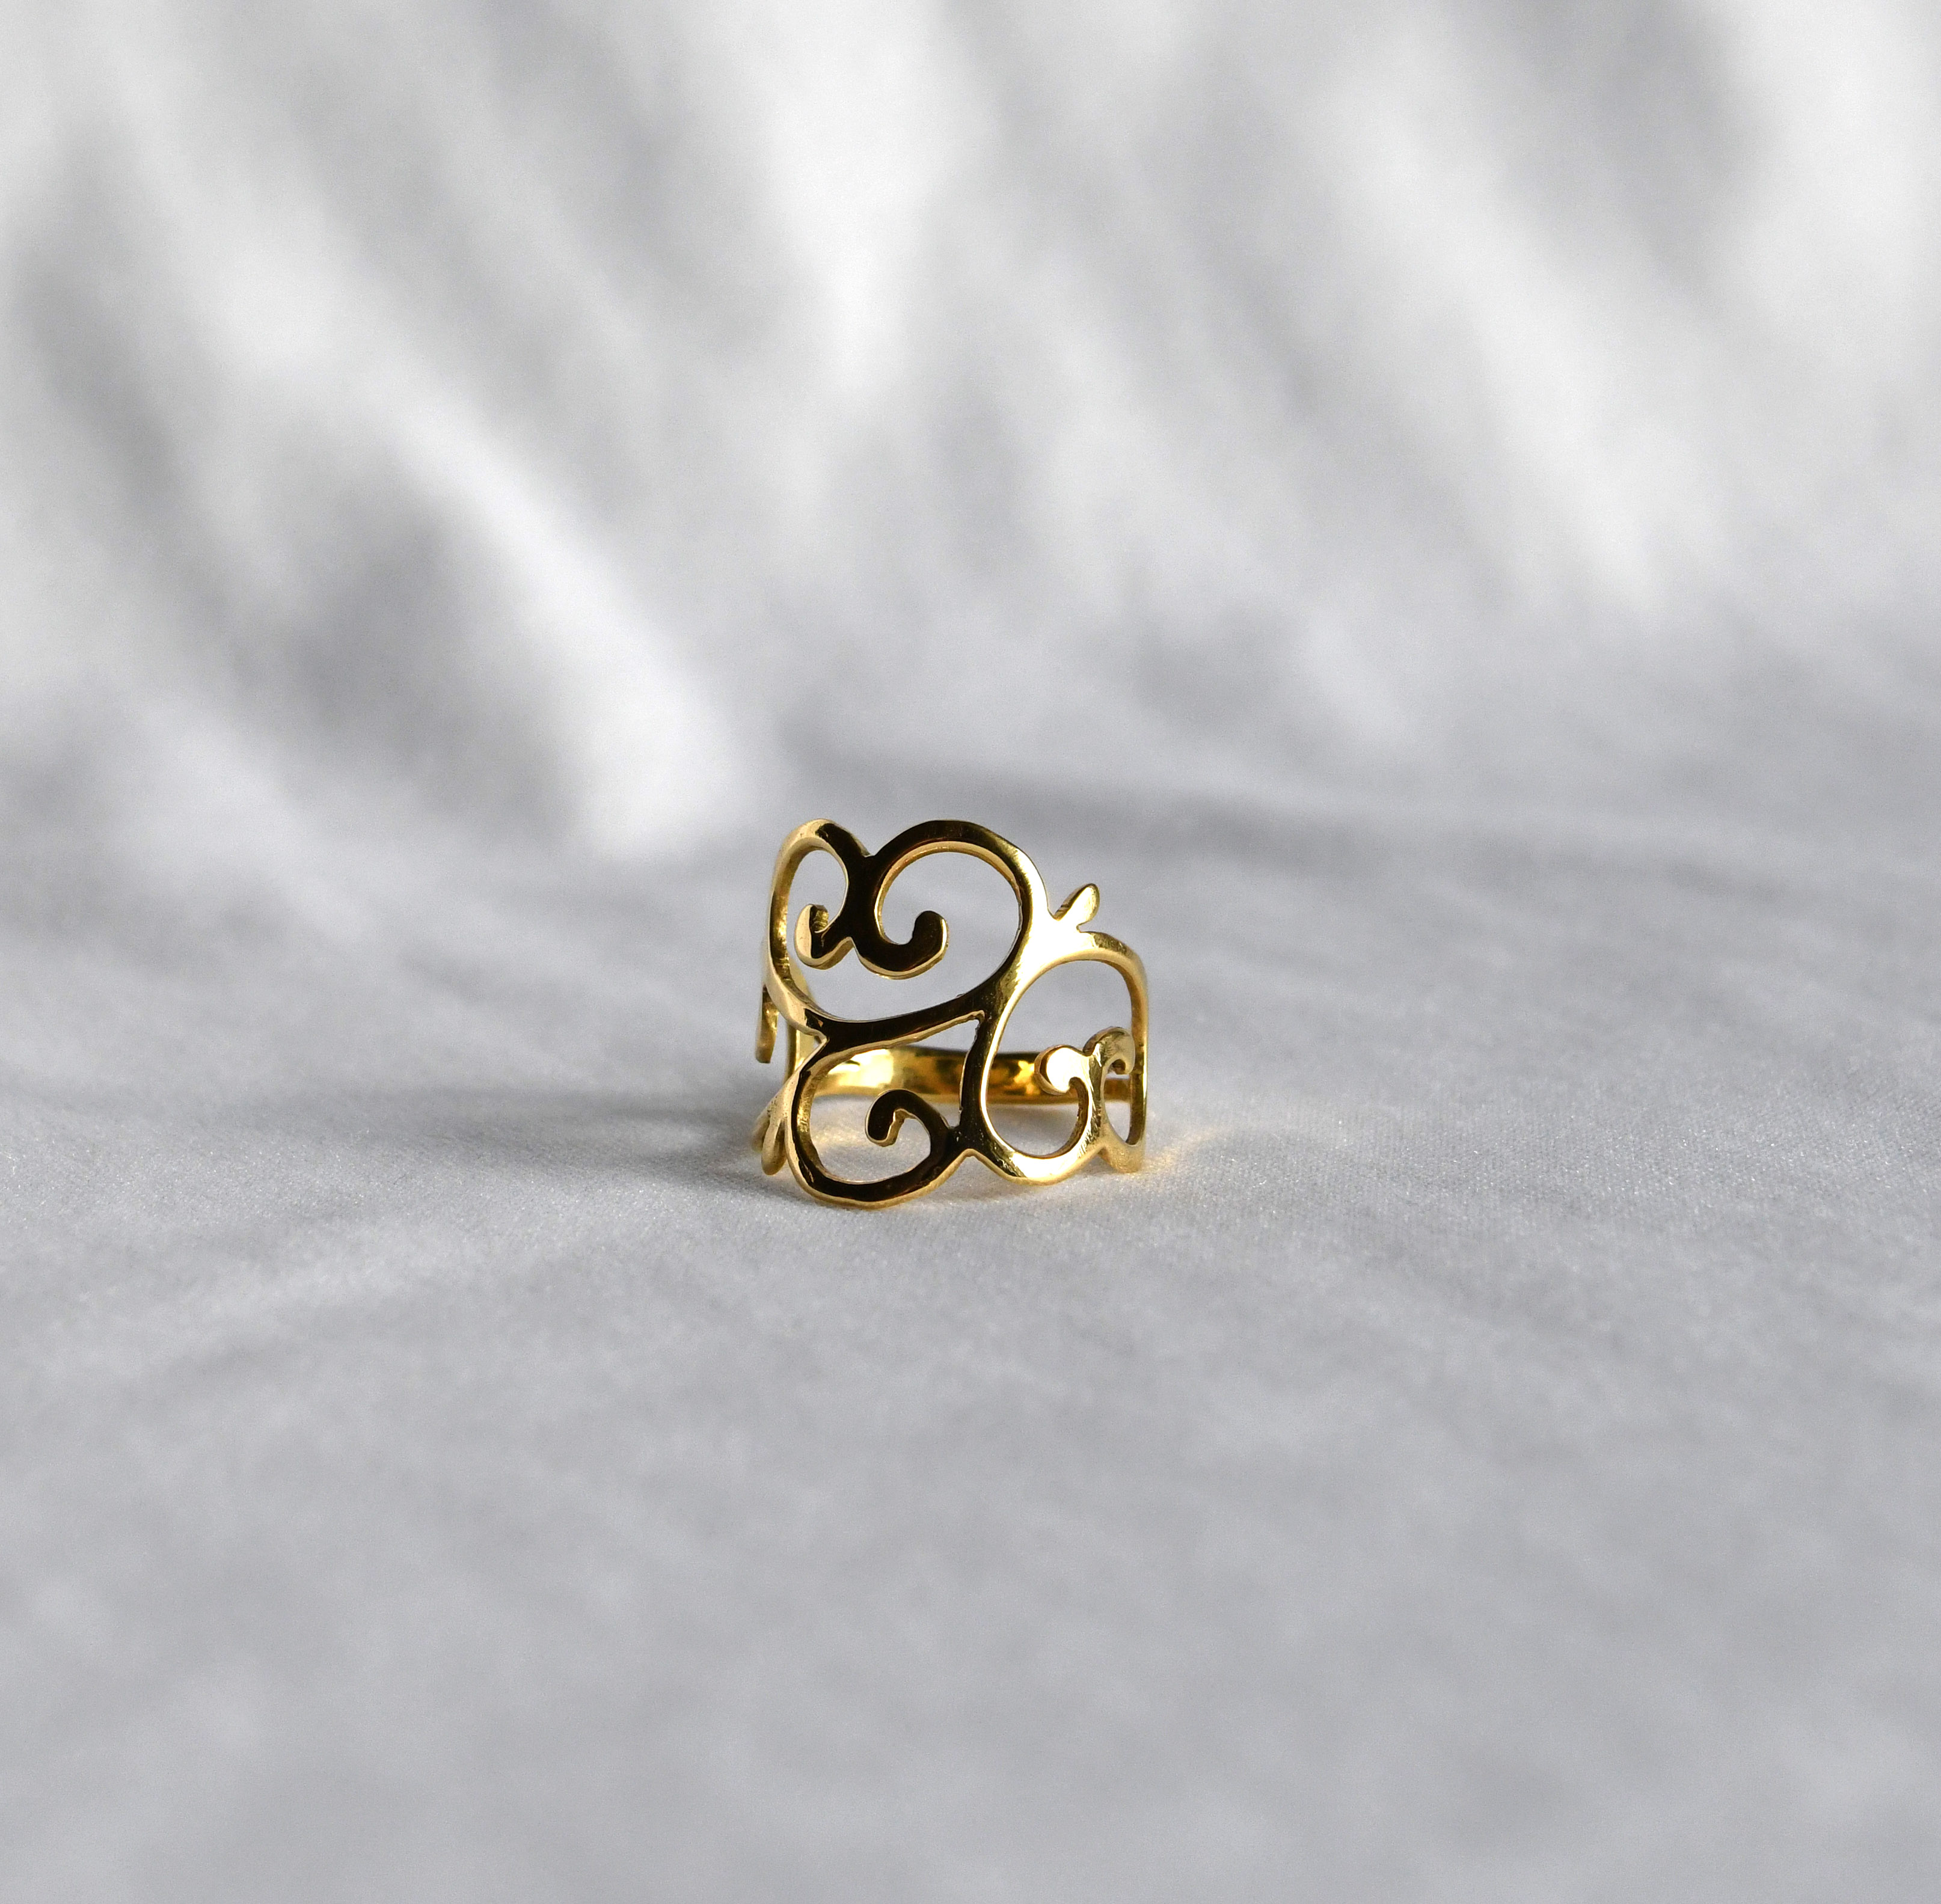 ピアス,pierce,earring,イヤリング,silver,gold,jewelry